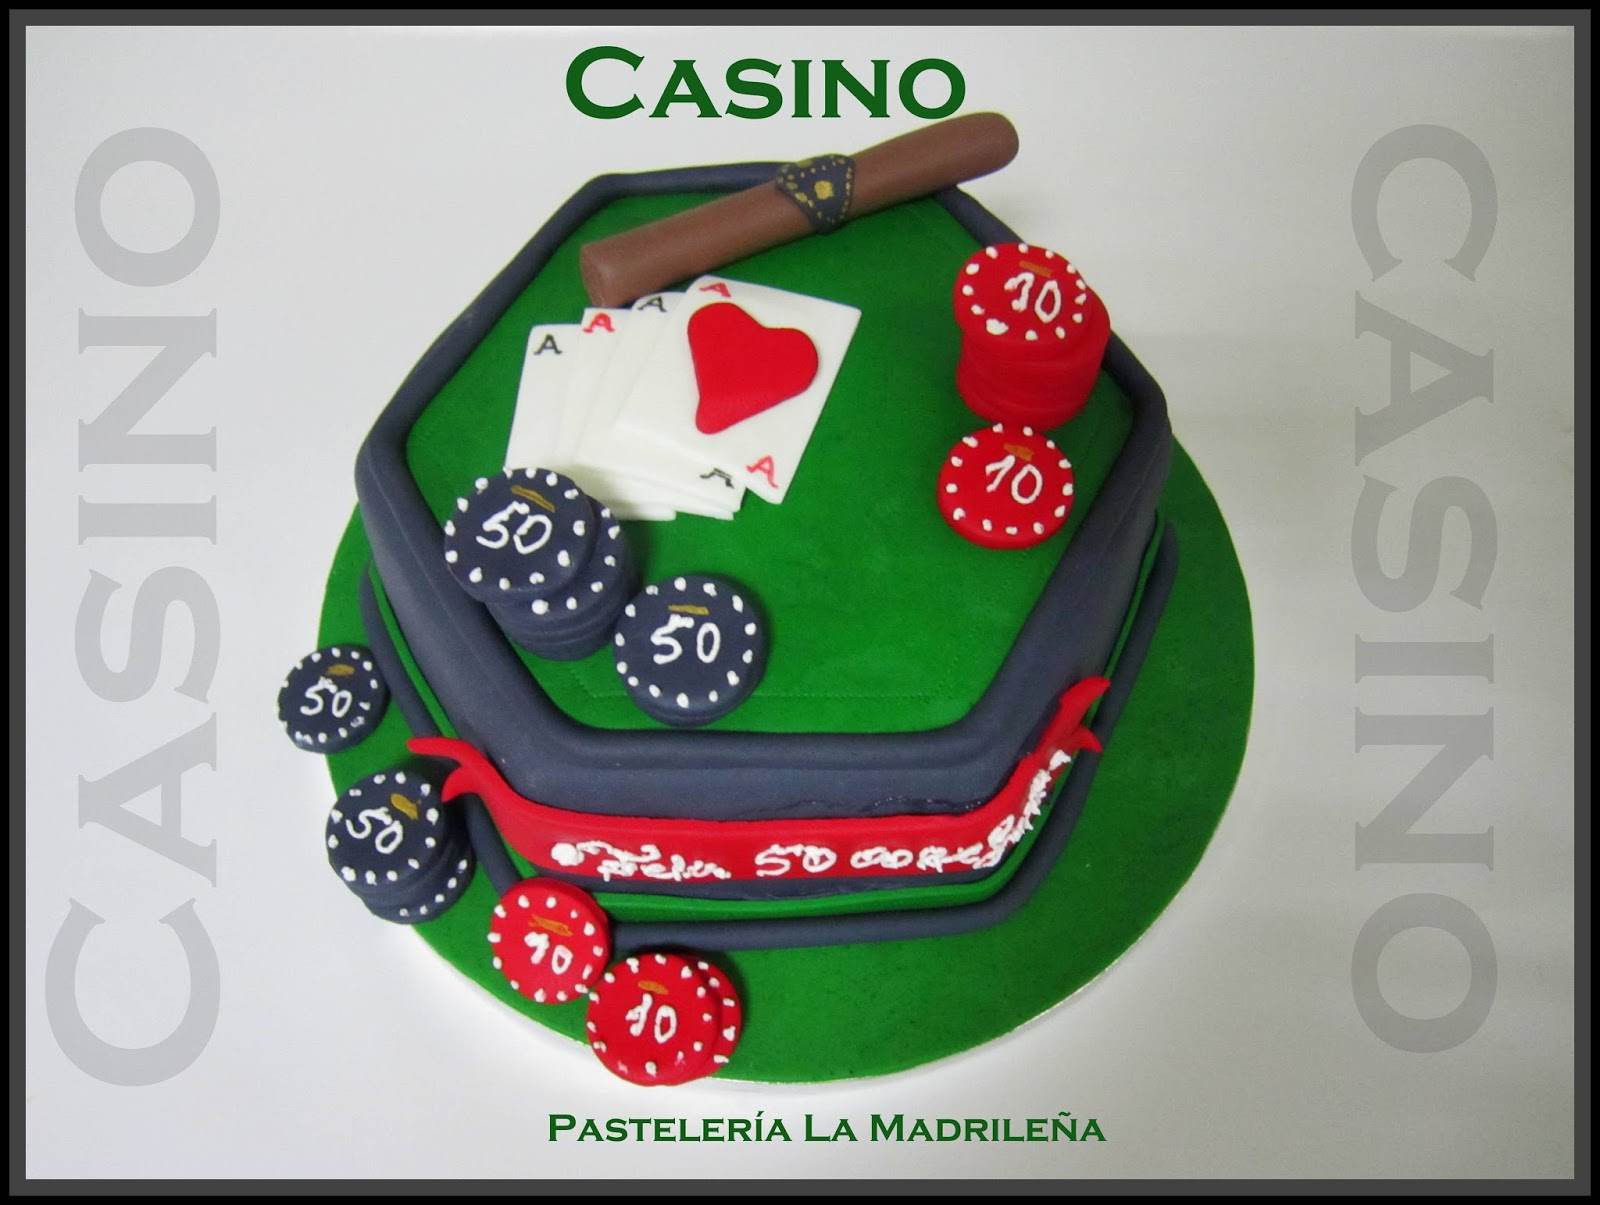 Pasteleria la madrile a tarta de fondant casino for Duo harinero